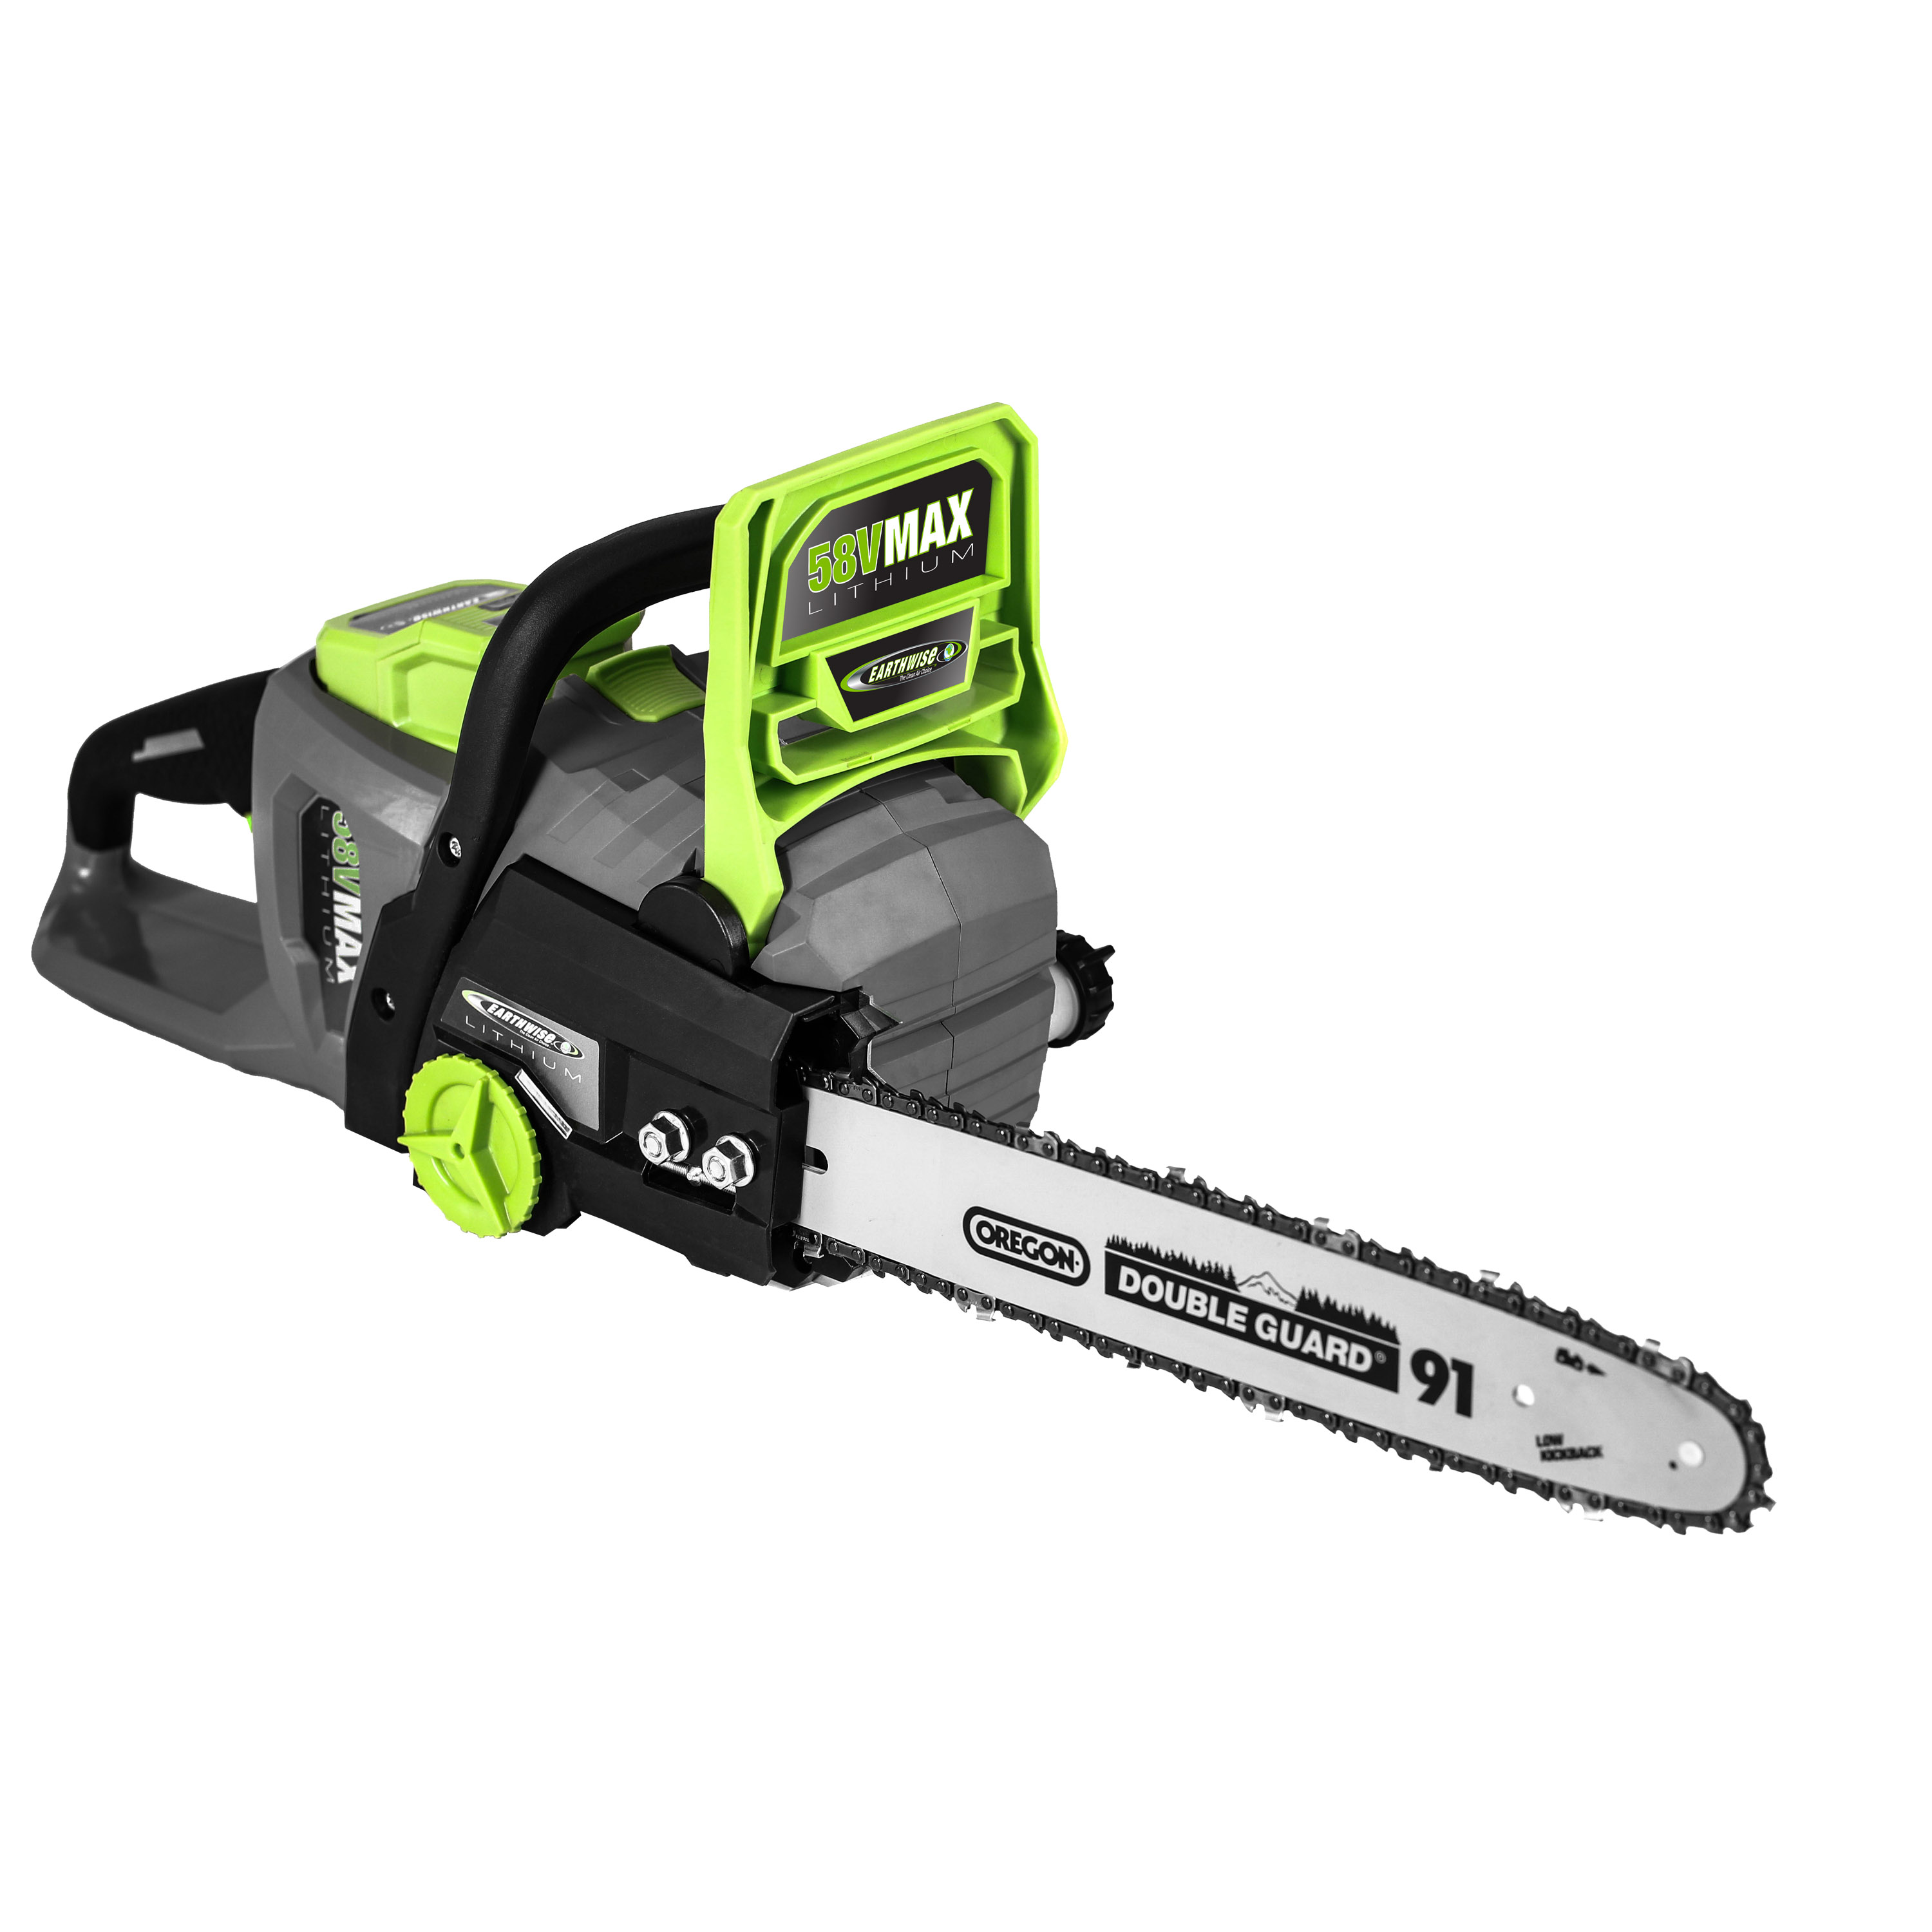 "Earthwise LCS35814 14"" 58-Volt Cordless Chainsaw, Brushless Motor (2Ah Battery and Charger Included) by Great States Corporation"